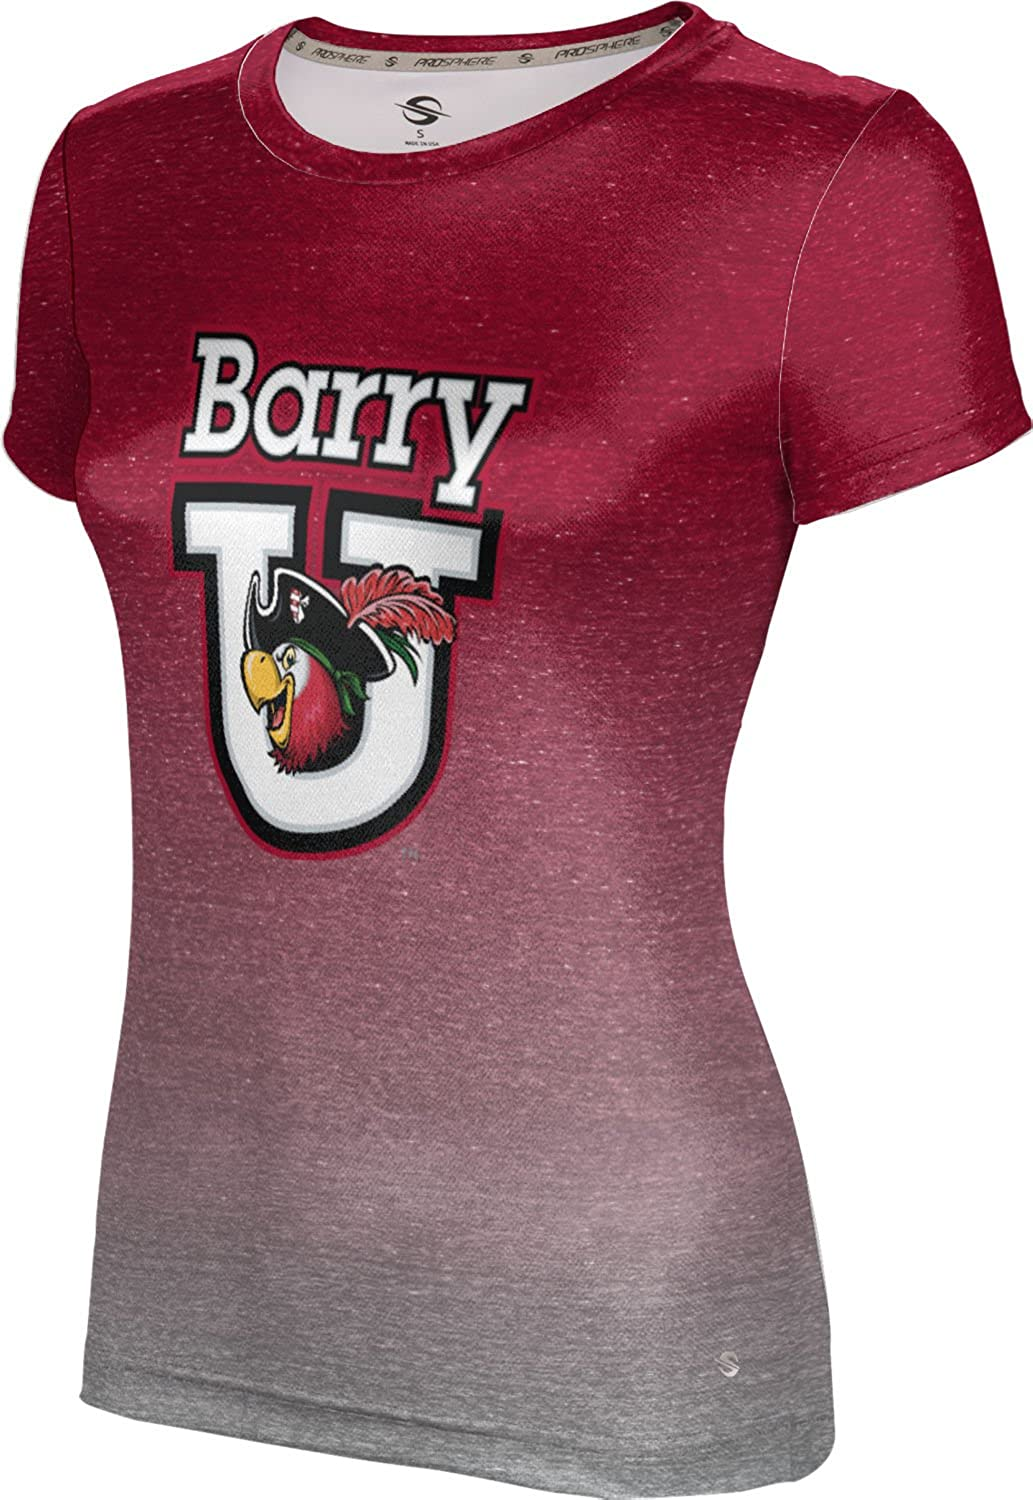 ProSphere Barry University Women's Performance Import Ombre 25% OFF T-Shirt